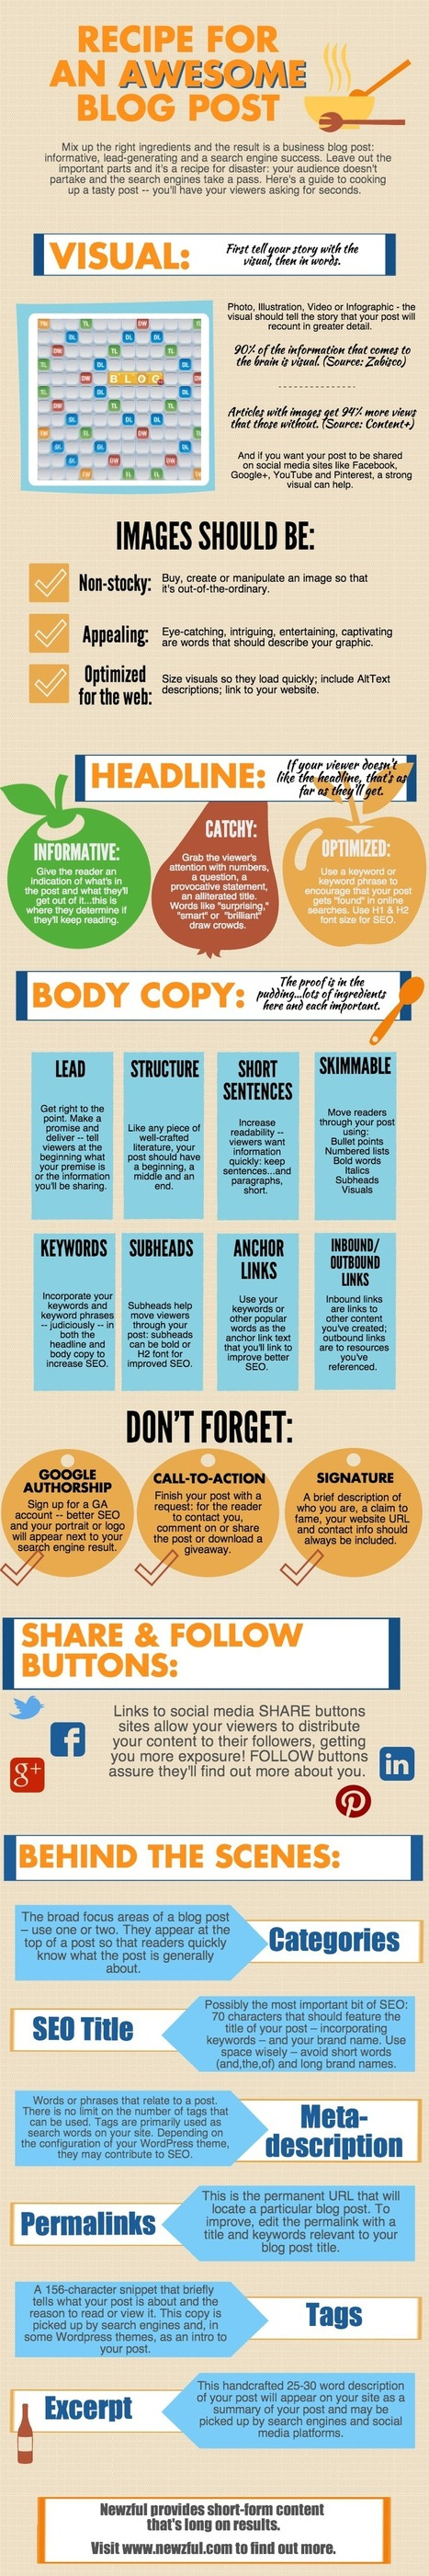 Recipe for an Awesome Blog Post #Infographic | MarketingHits | Scoop.it